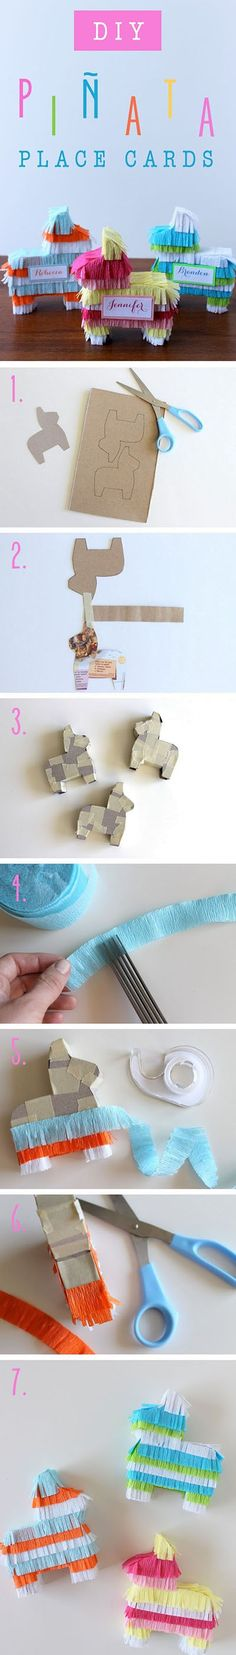 So Cute Craft | DIY & Crafts Tutorials